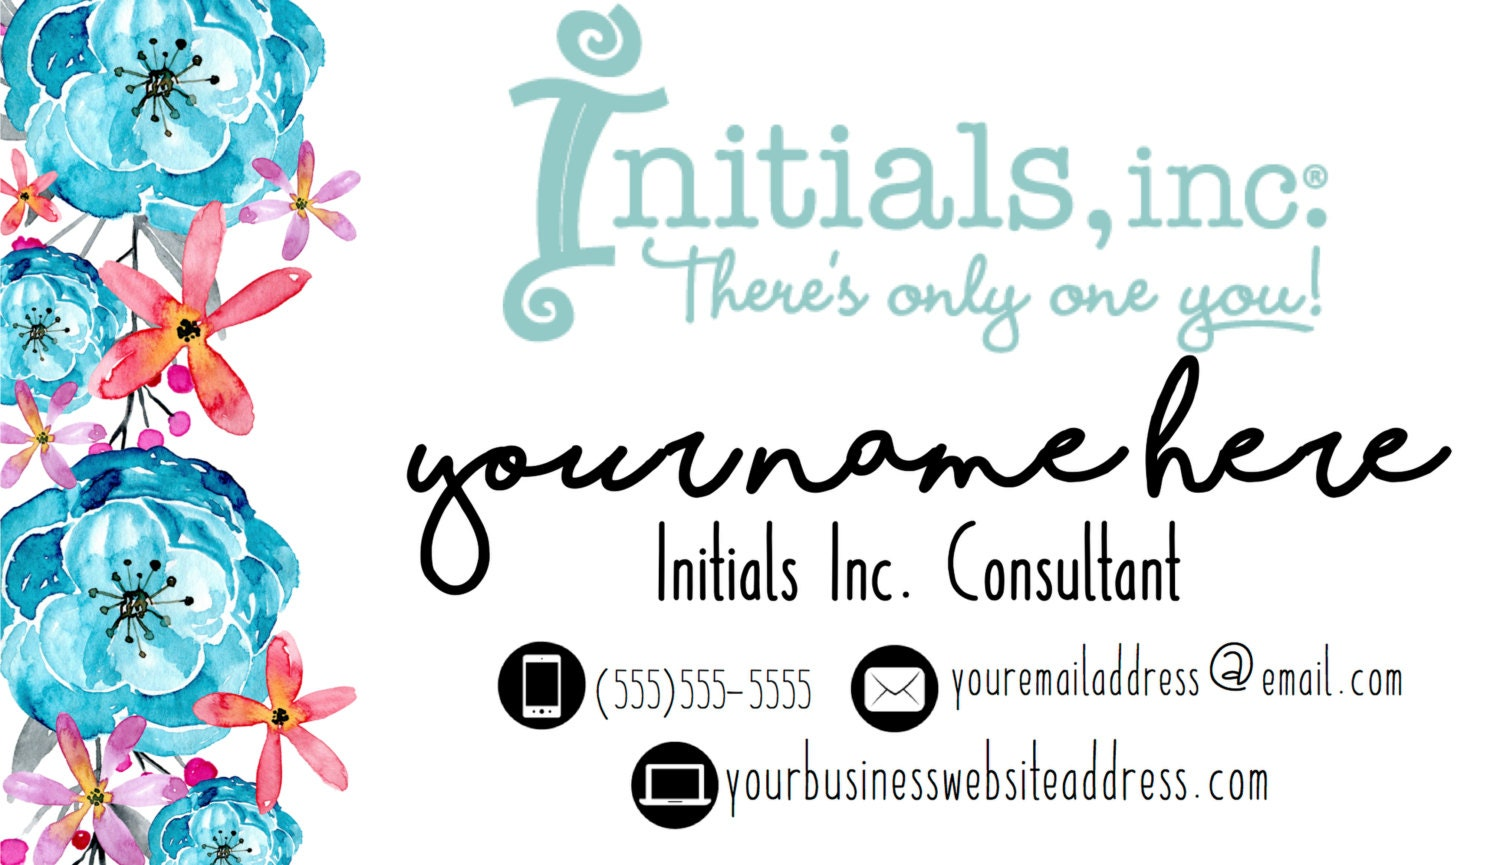 Initials Inc. Personalized Business Card: Coral and Turquoise